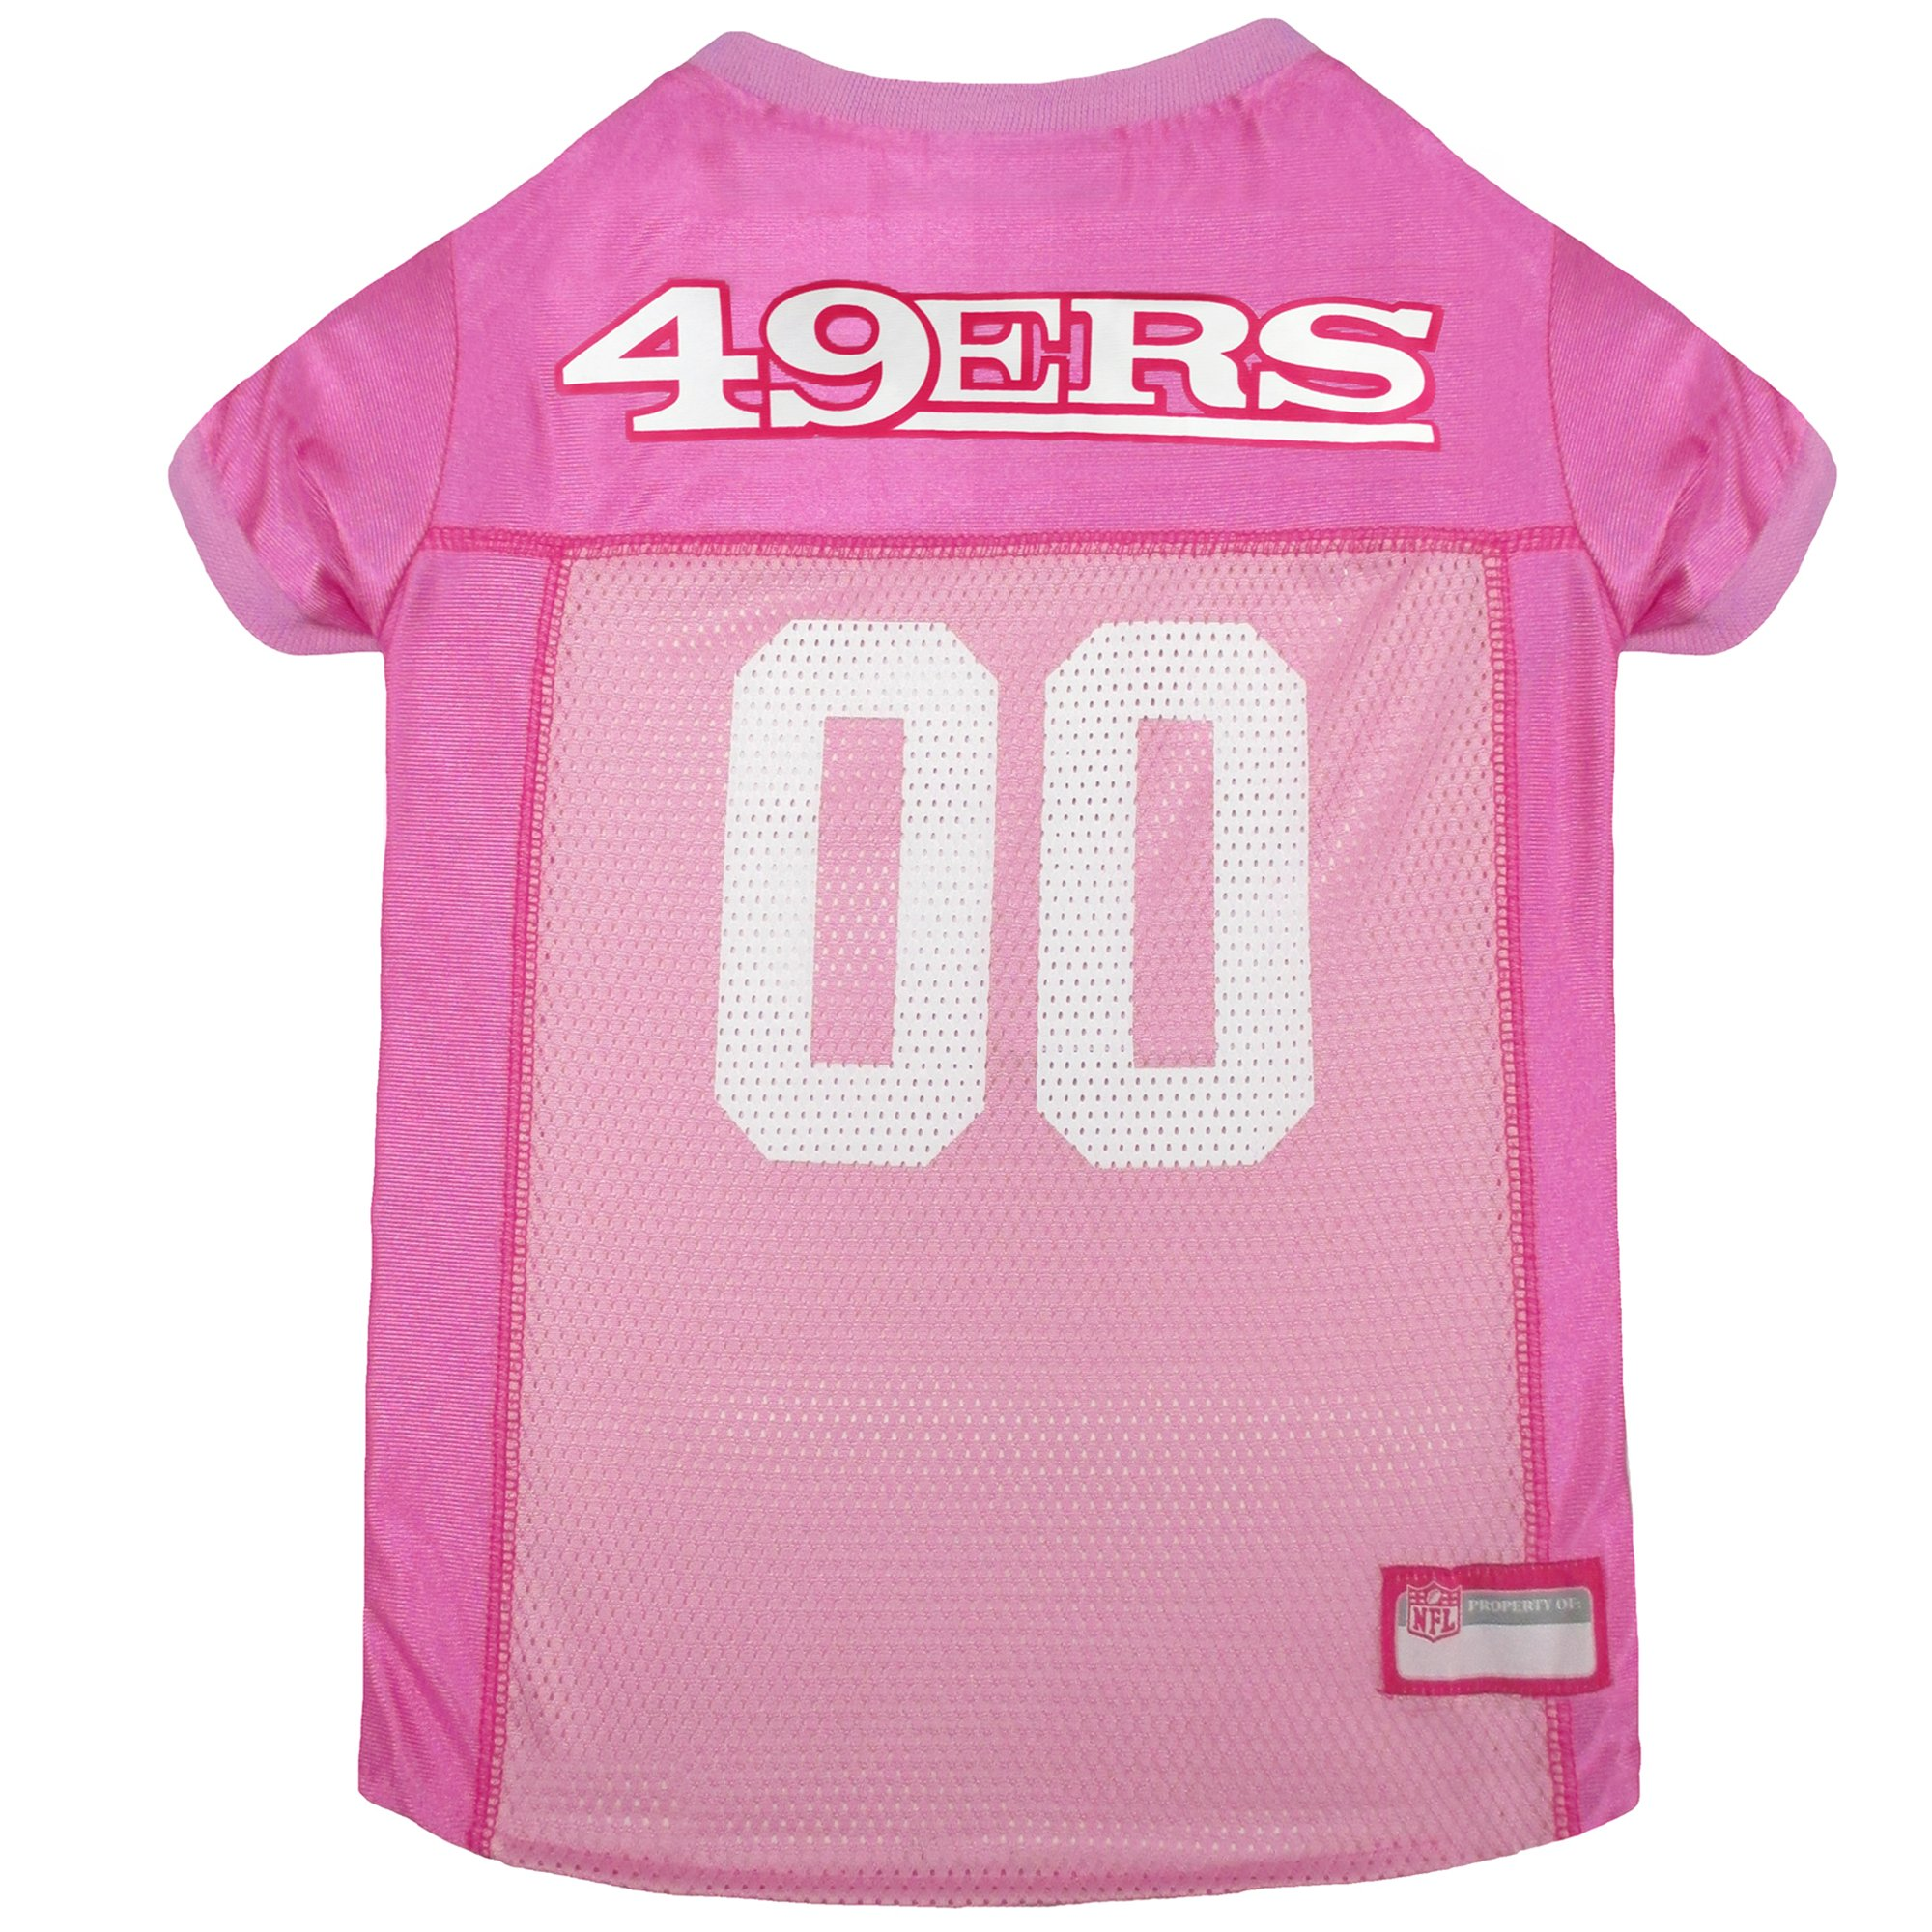 reputable site ae513 941e0 Pets First San Francisco 49ers NFL Pink Mesh Jersey, Medium | Petco